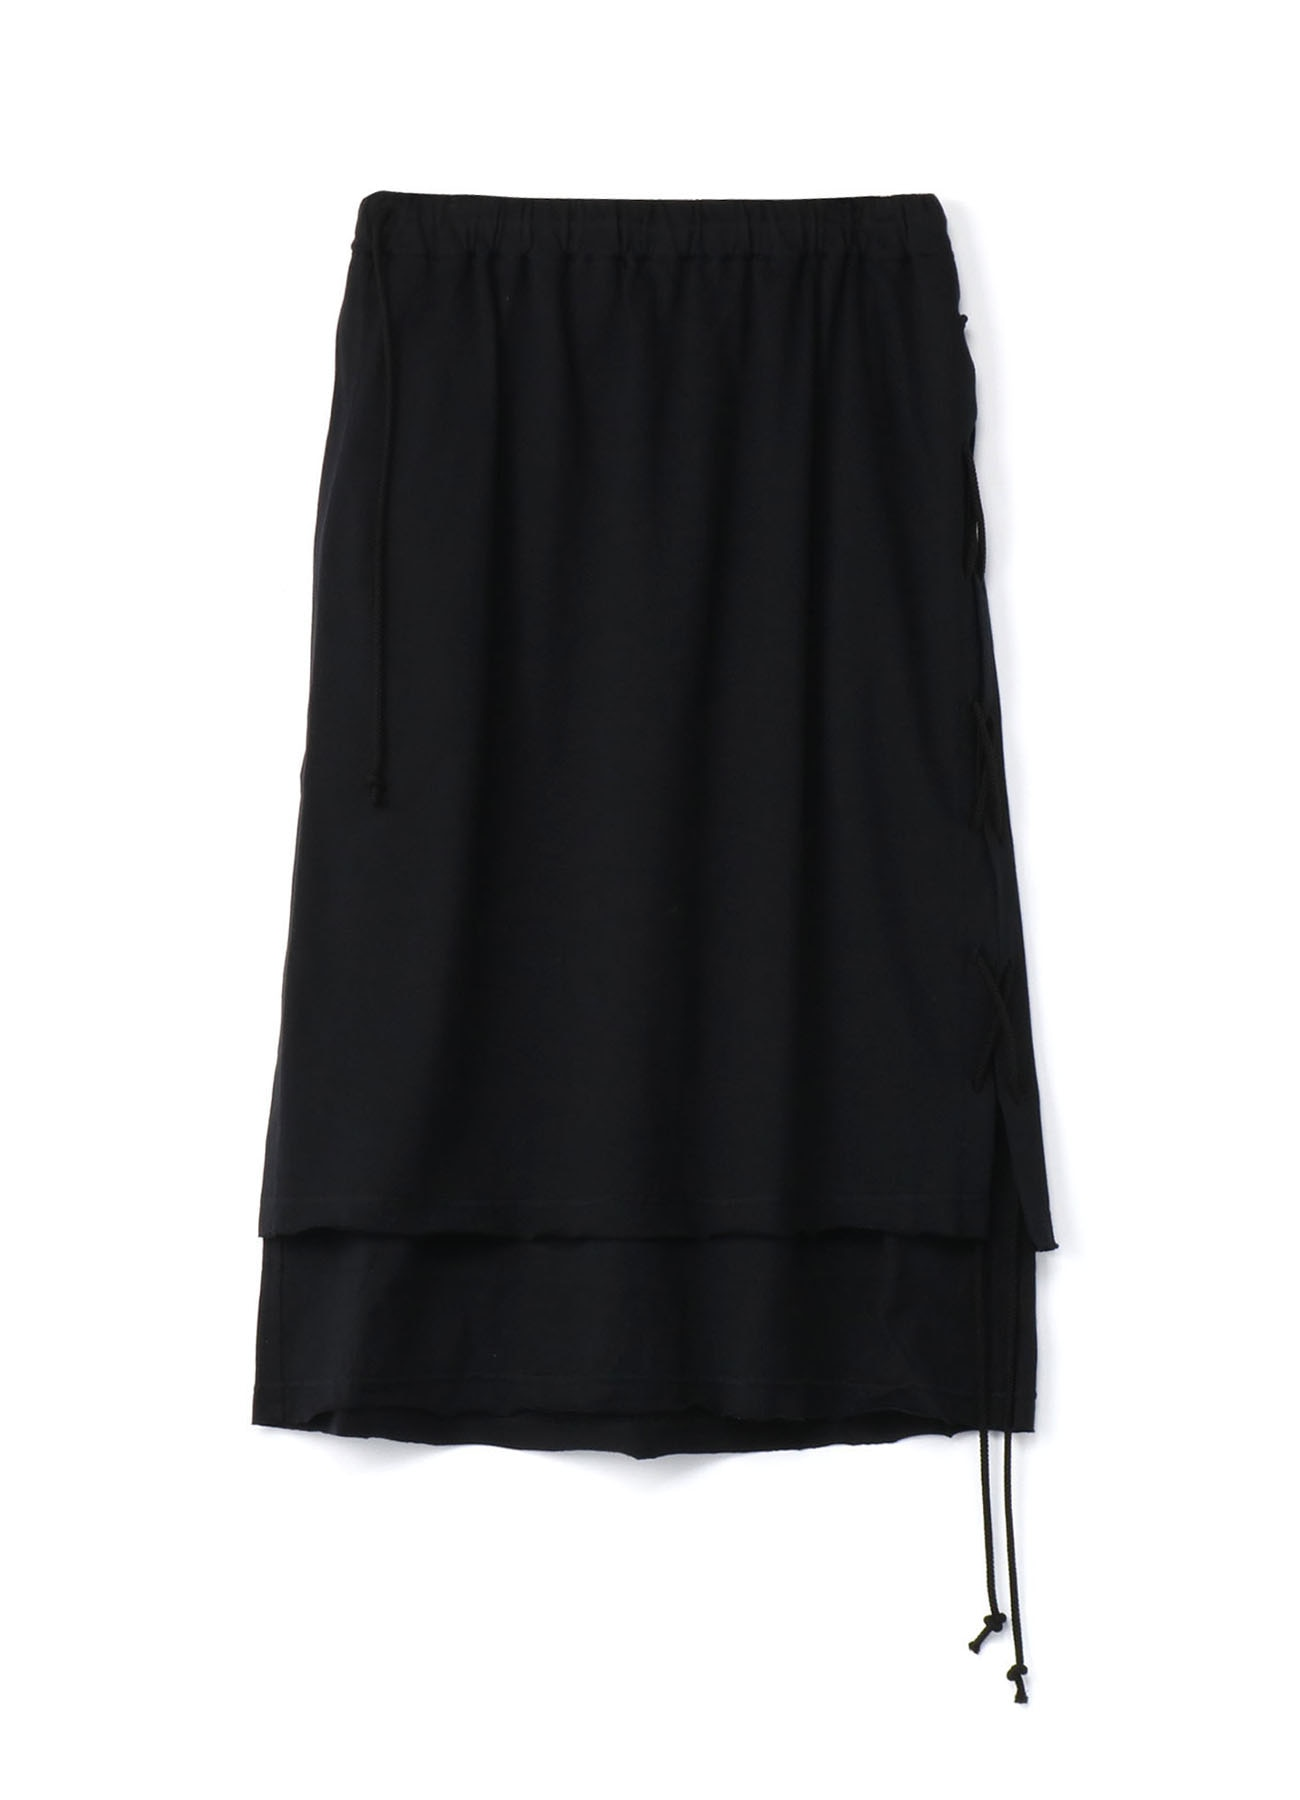 40/2Cotton Jersey Side Lace Up Lap Skirt